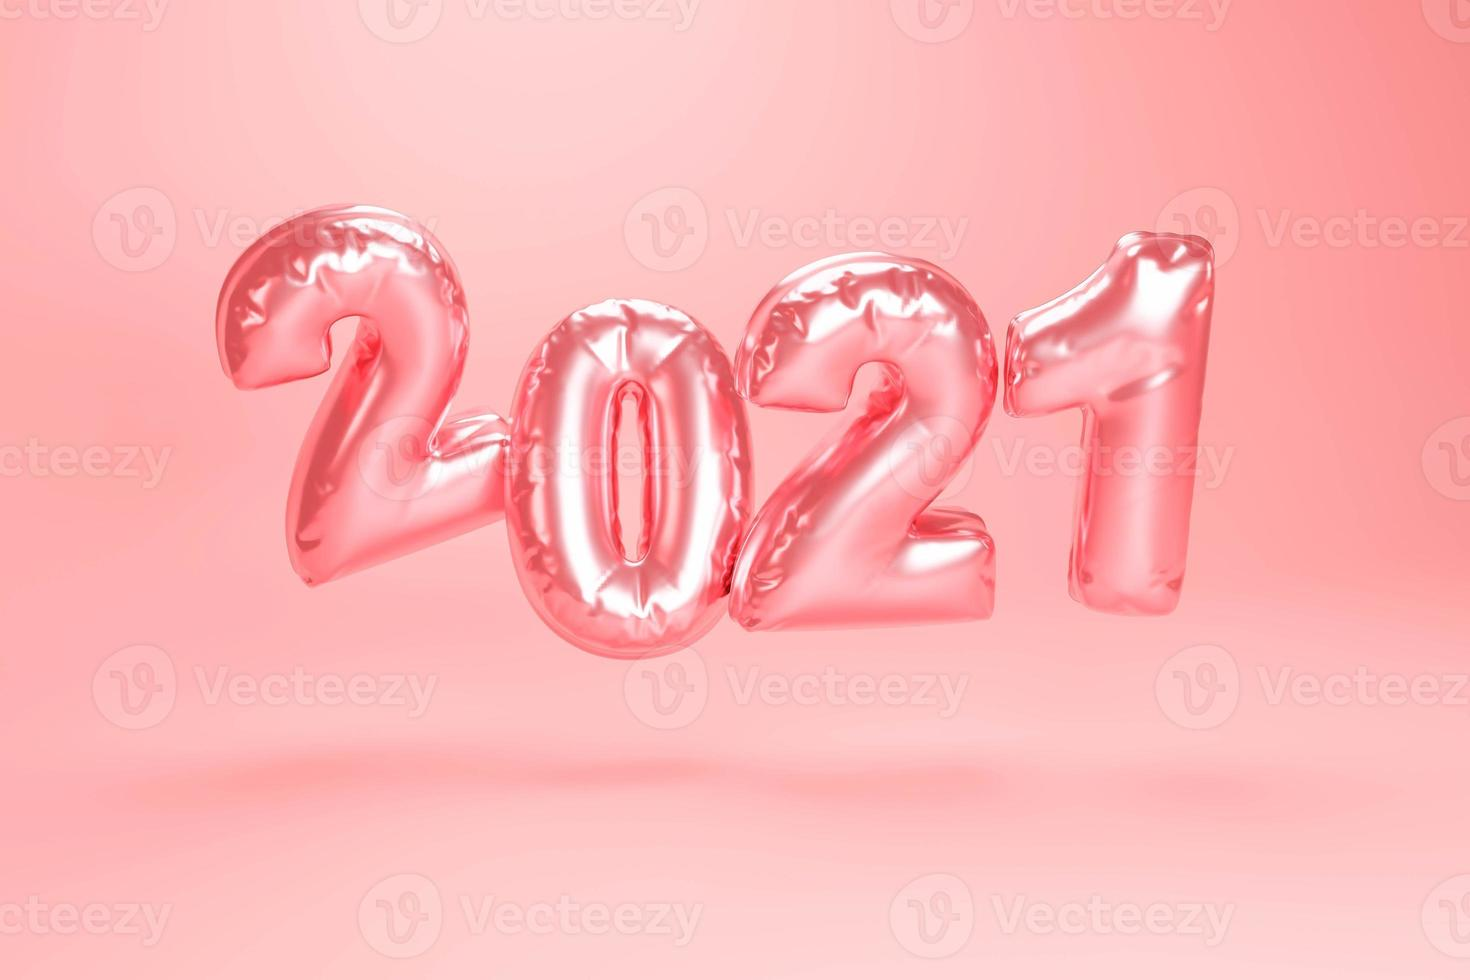 2021 Happy New Year. Holiday 3d Party of bollon metallic pink color photo